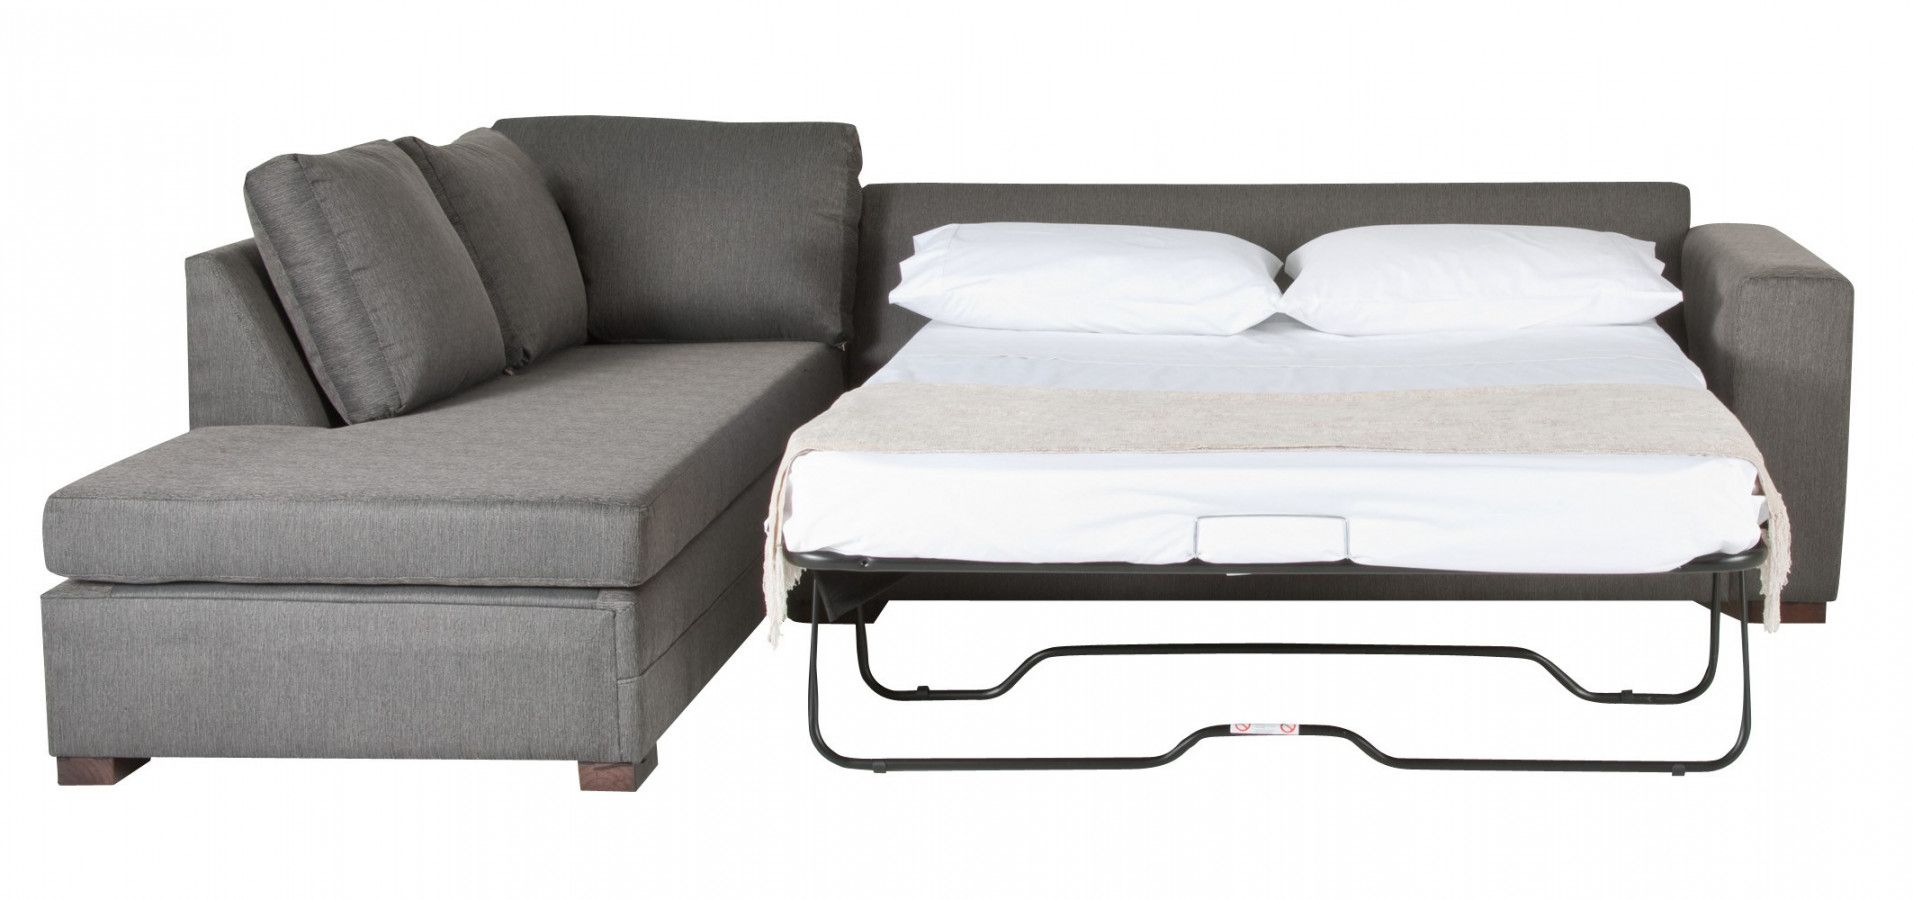 Pull Out Couch For Wider Space And Comfortable Sleep